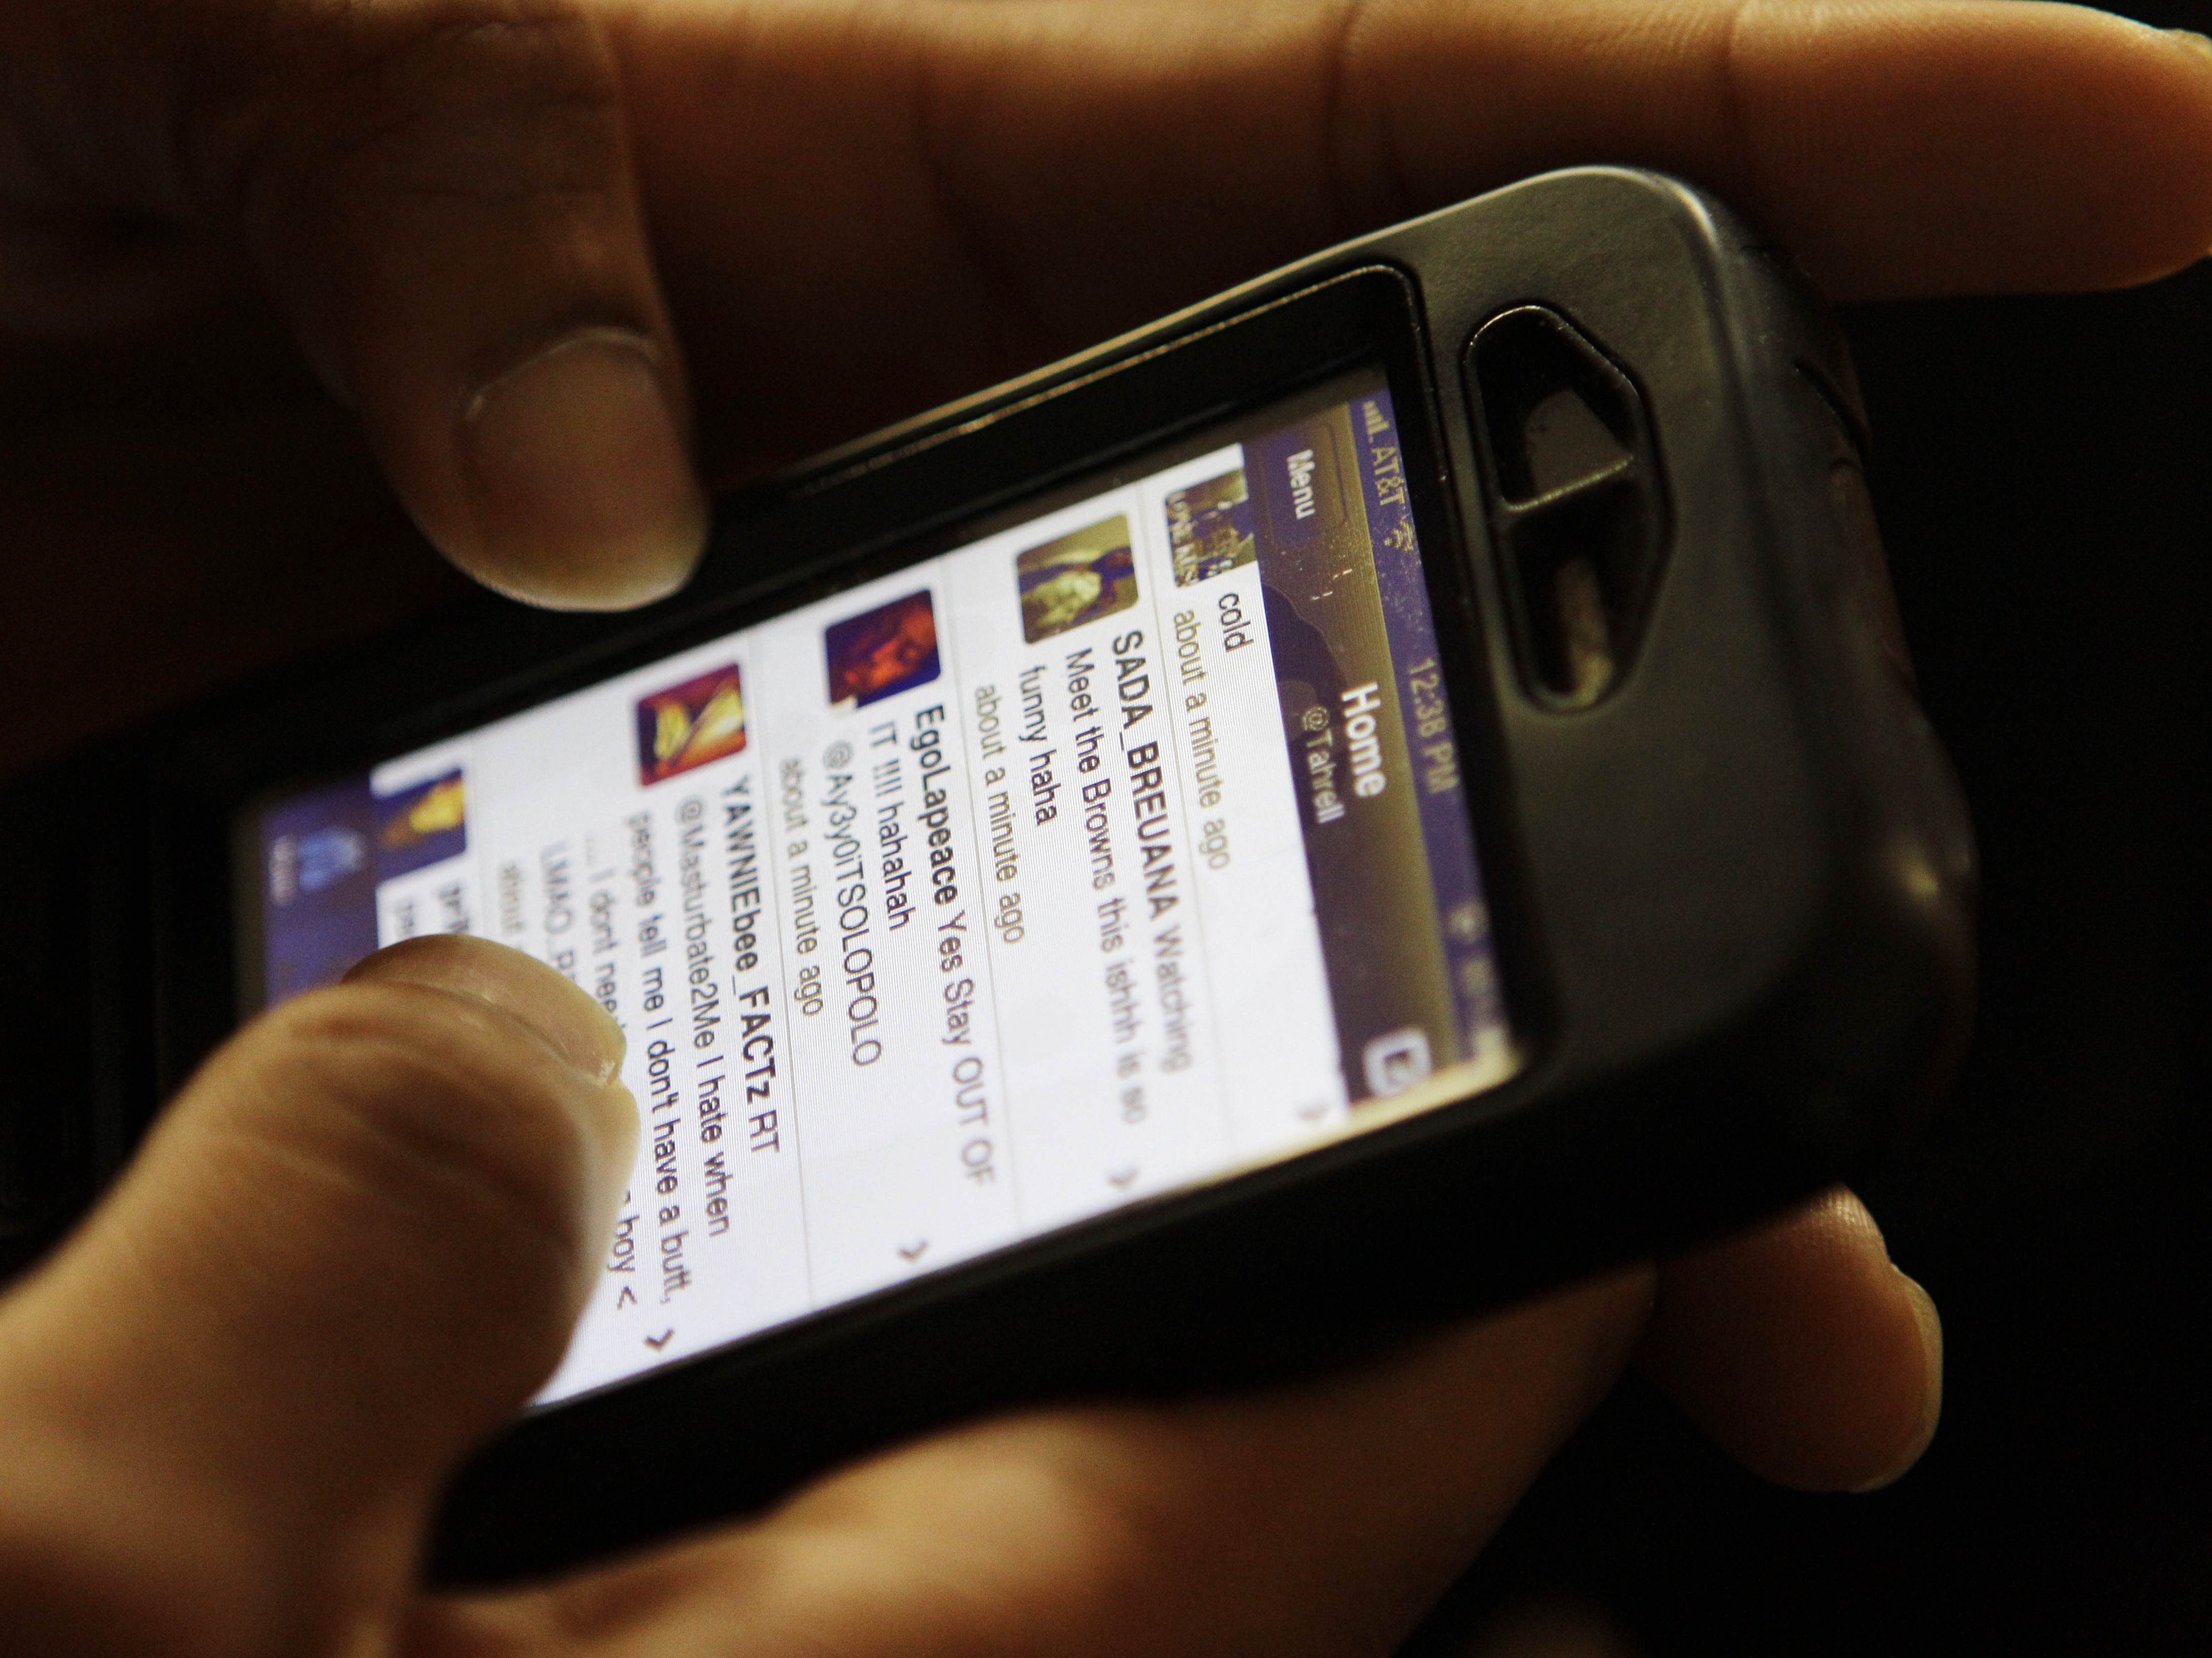 Chips, Beer, Tweets: Why TV Is Key To Twitter's Prospects